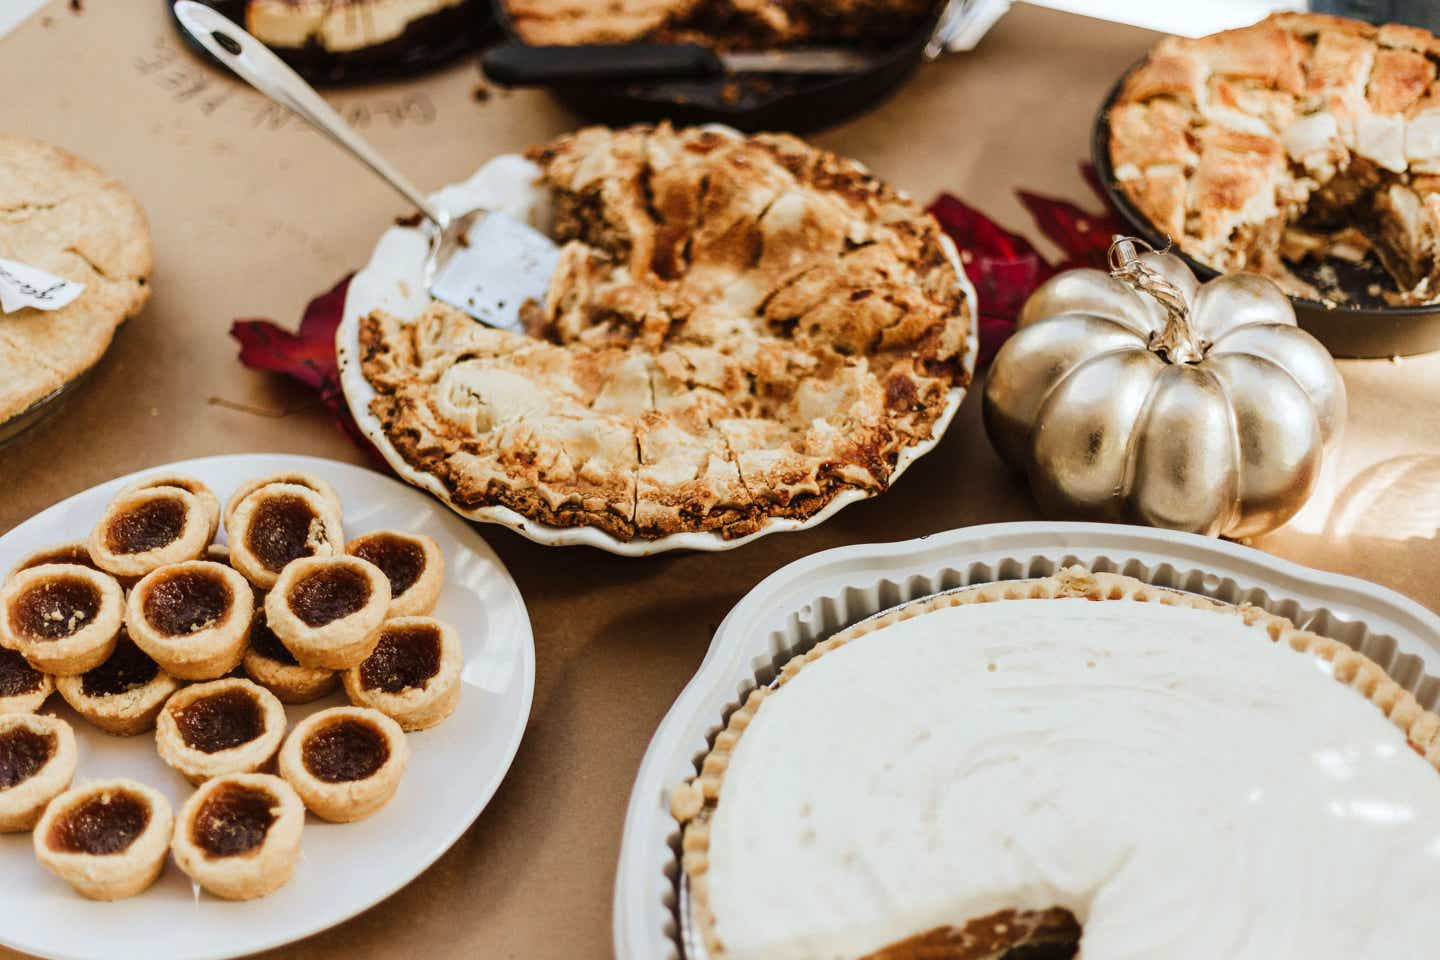 A festive fall table adorned with various pastries and desserts.